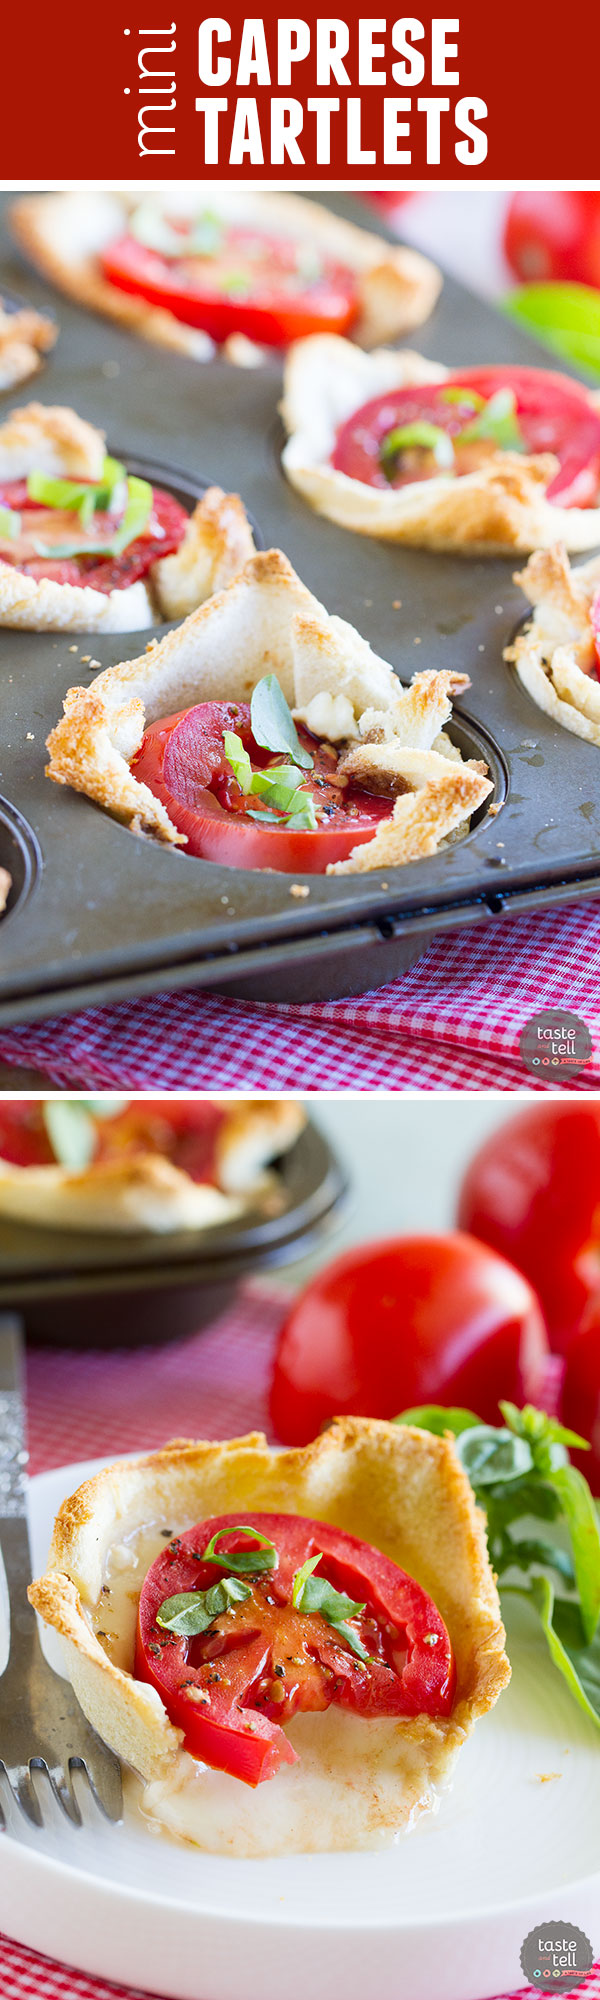 Mini tartlets filled with seasoned cream cheese, fresh mozzarella, tomato and topped with basil. These Mini Caprese Tartlets are the perfect end of summer appetizer or side dish!